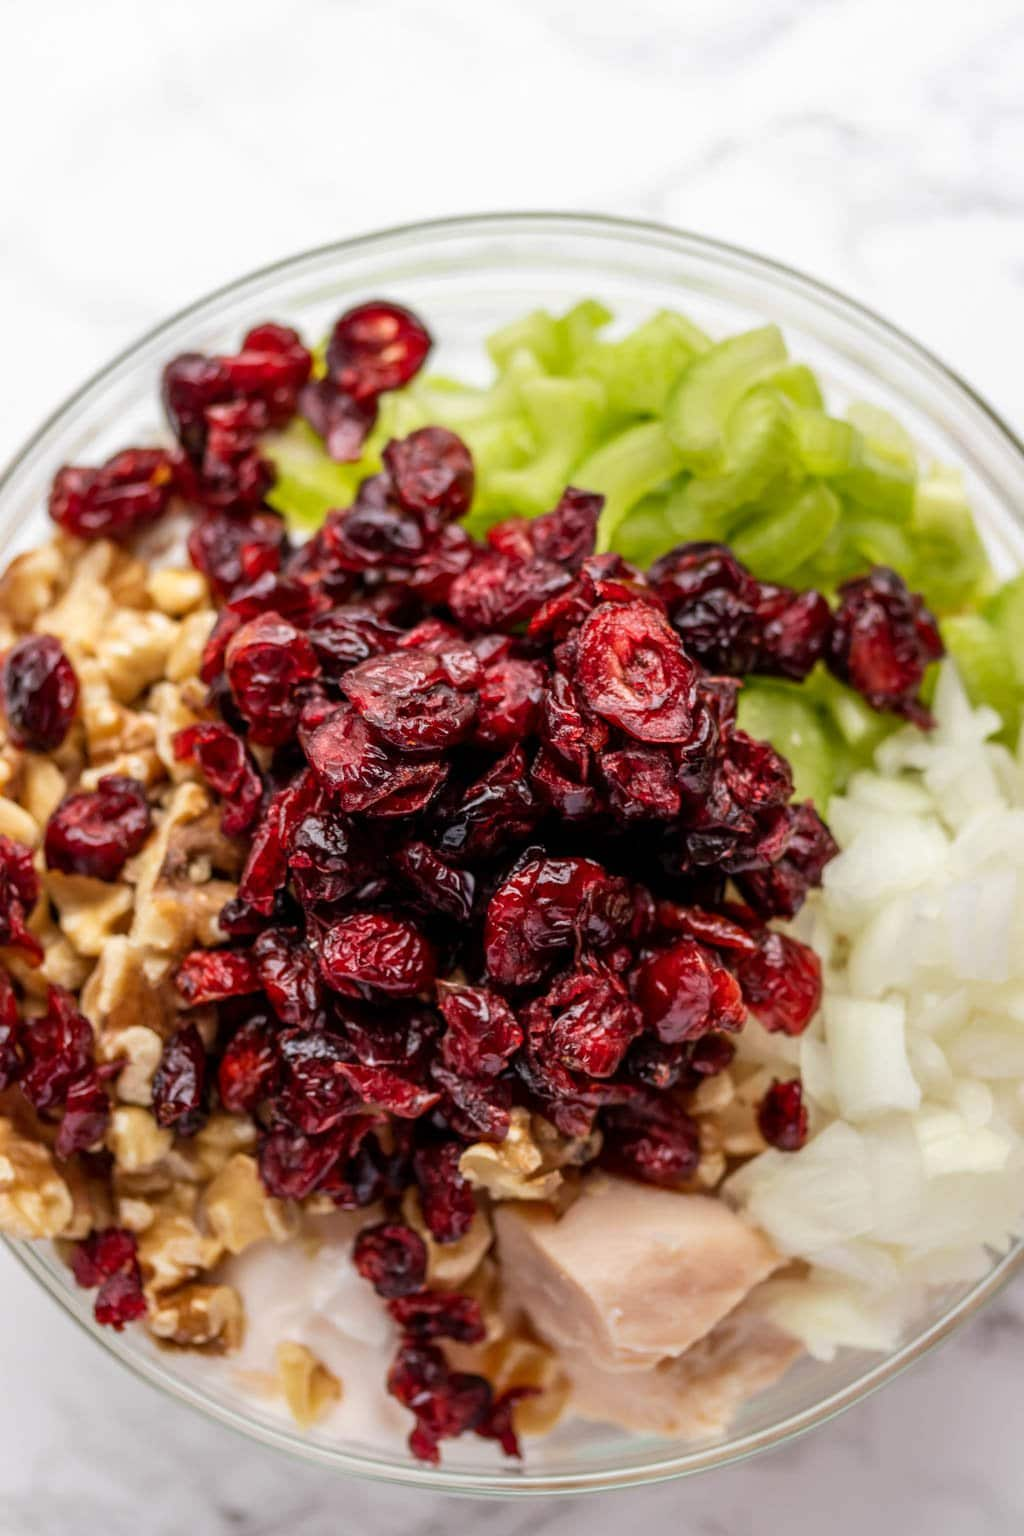 cranberries, walnuts, chicken, celery and onion in a bowl